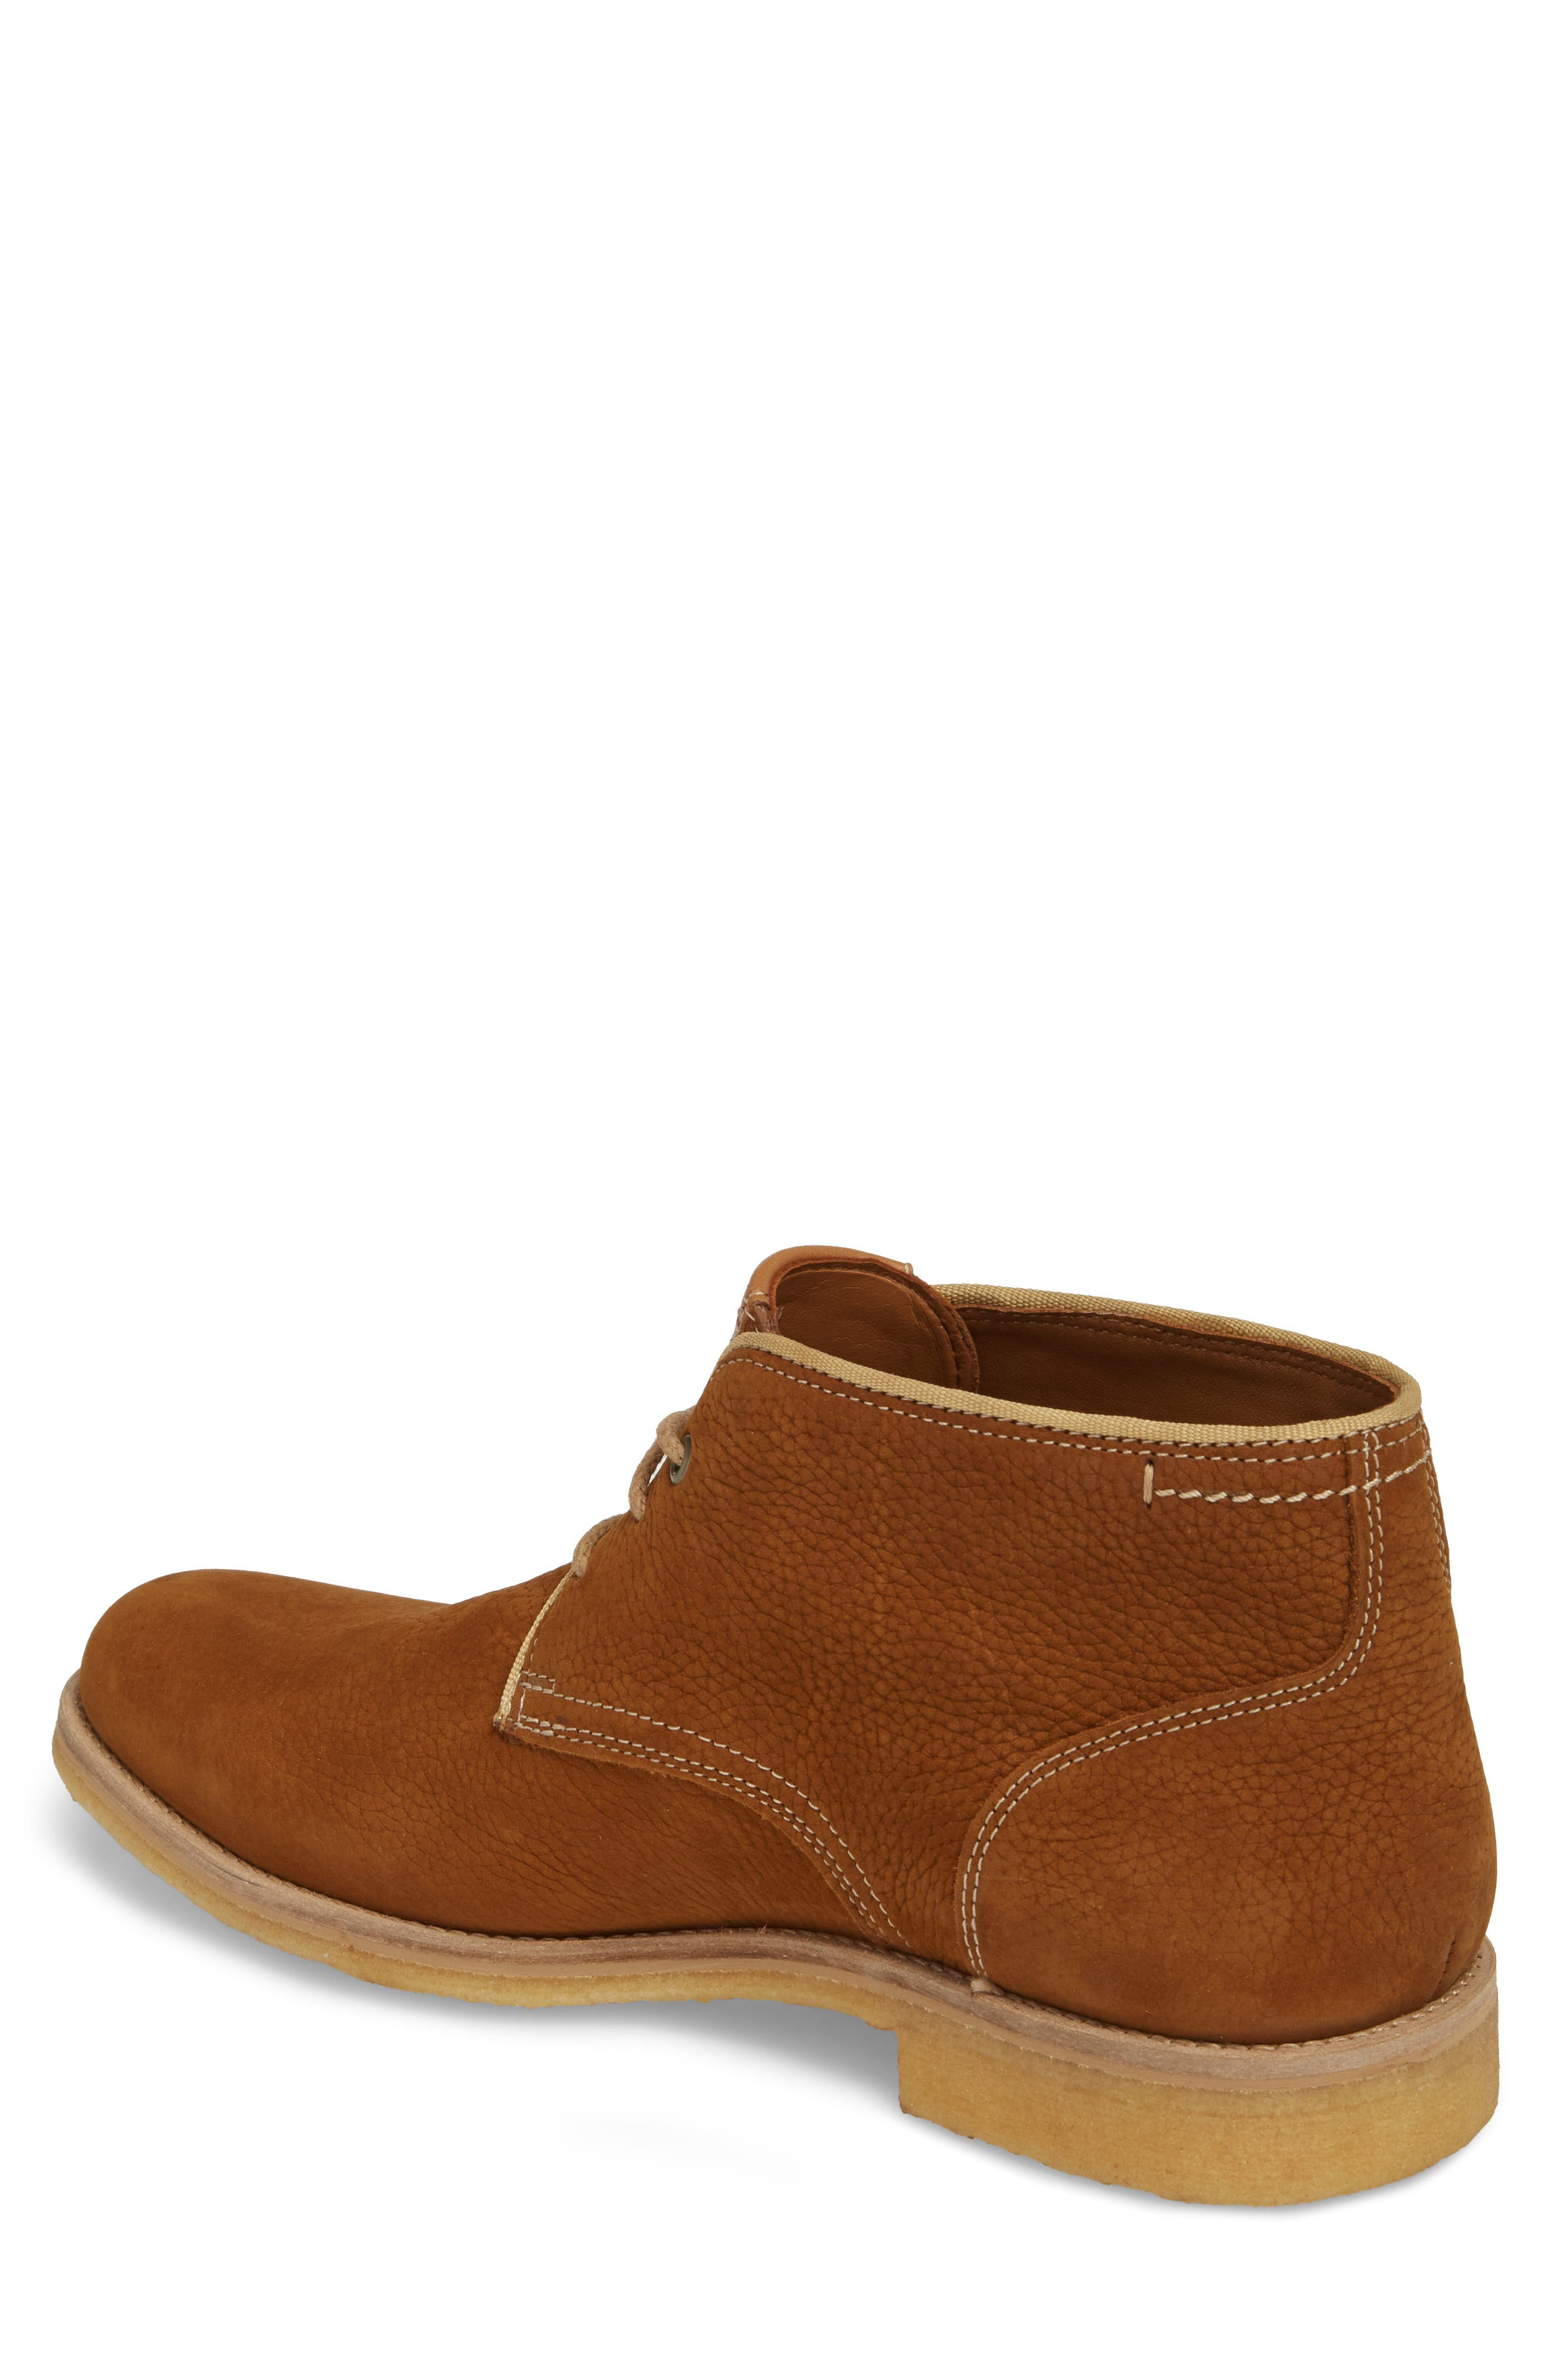 Howell Water Resistant Chukka Boot,                             Alternate thumbnail 2, color,                             240